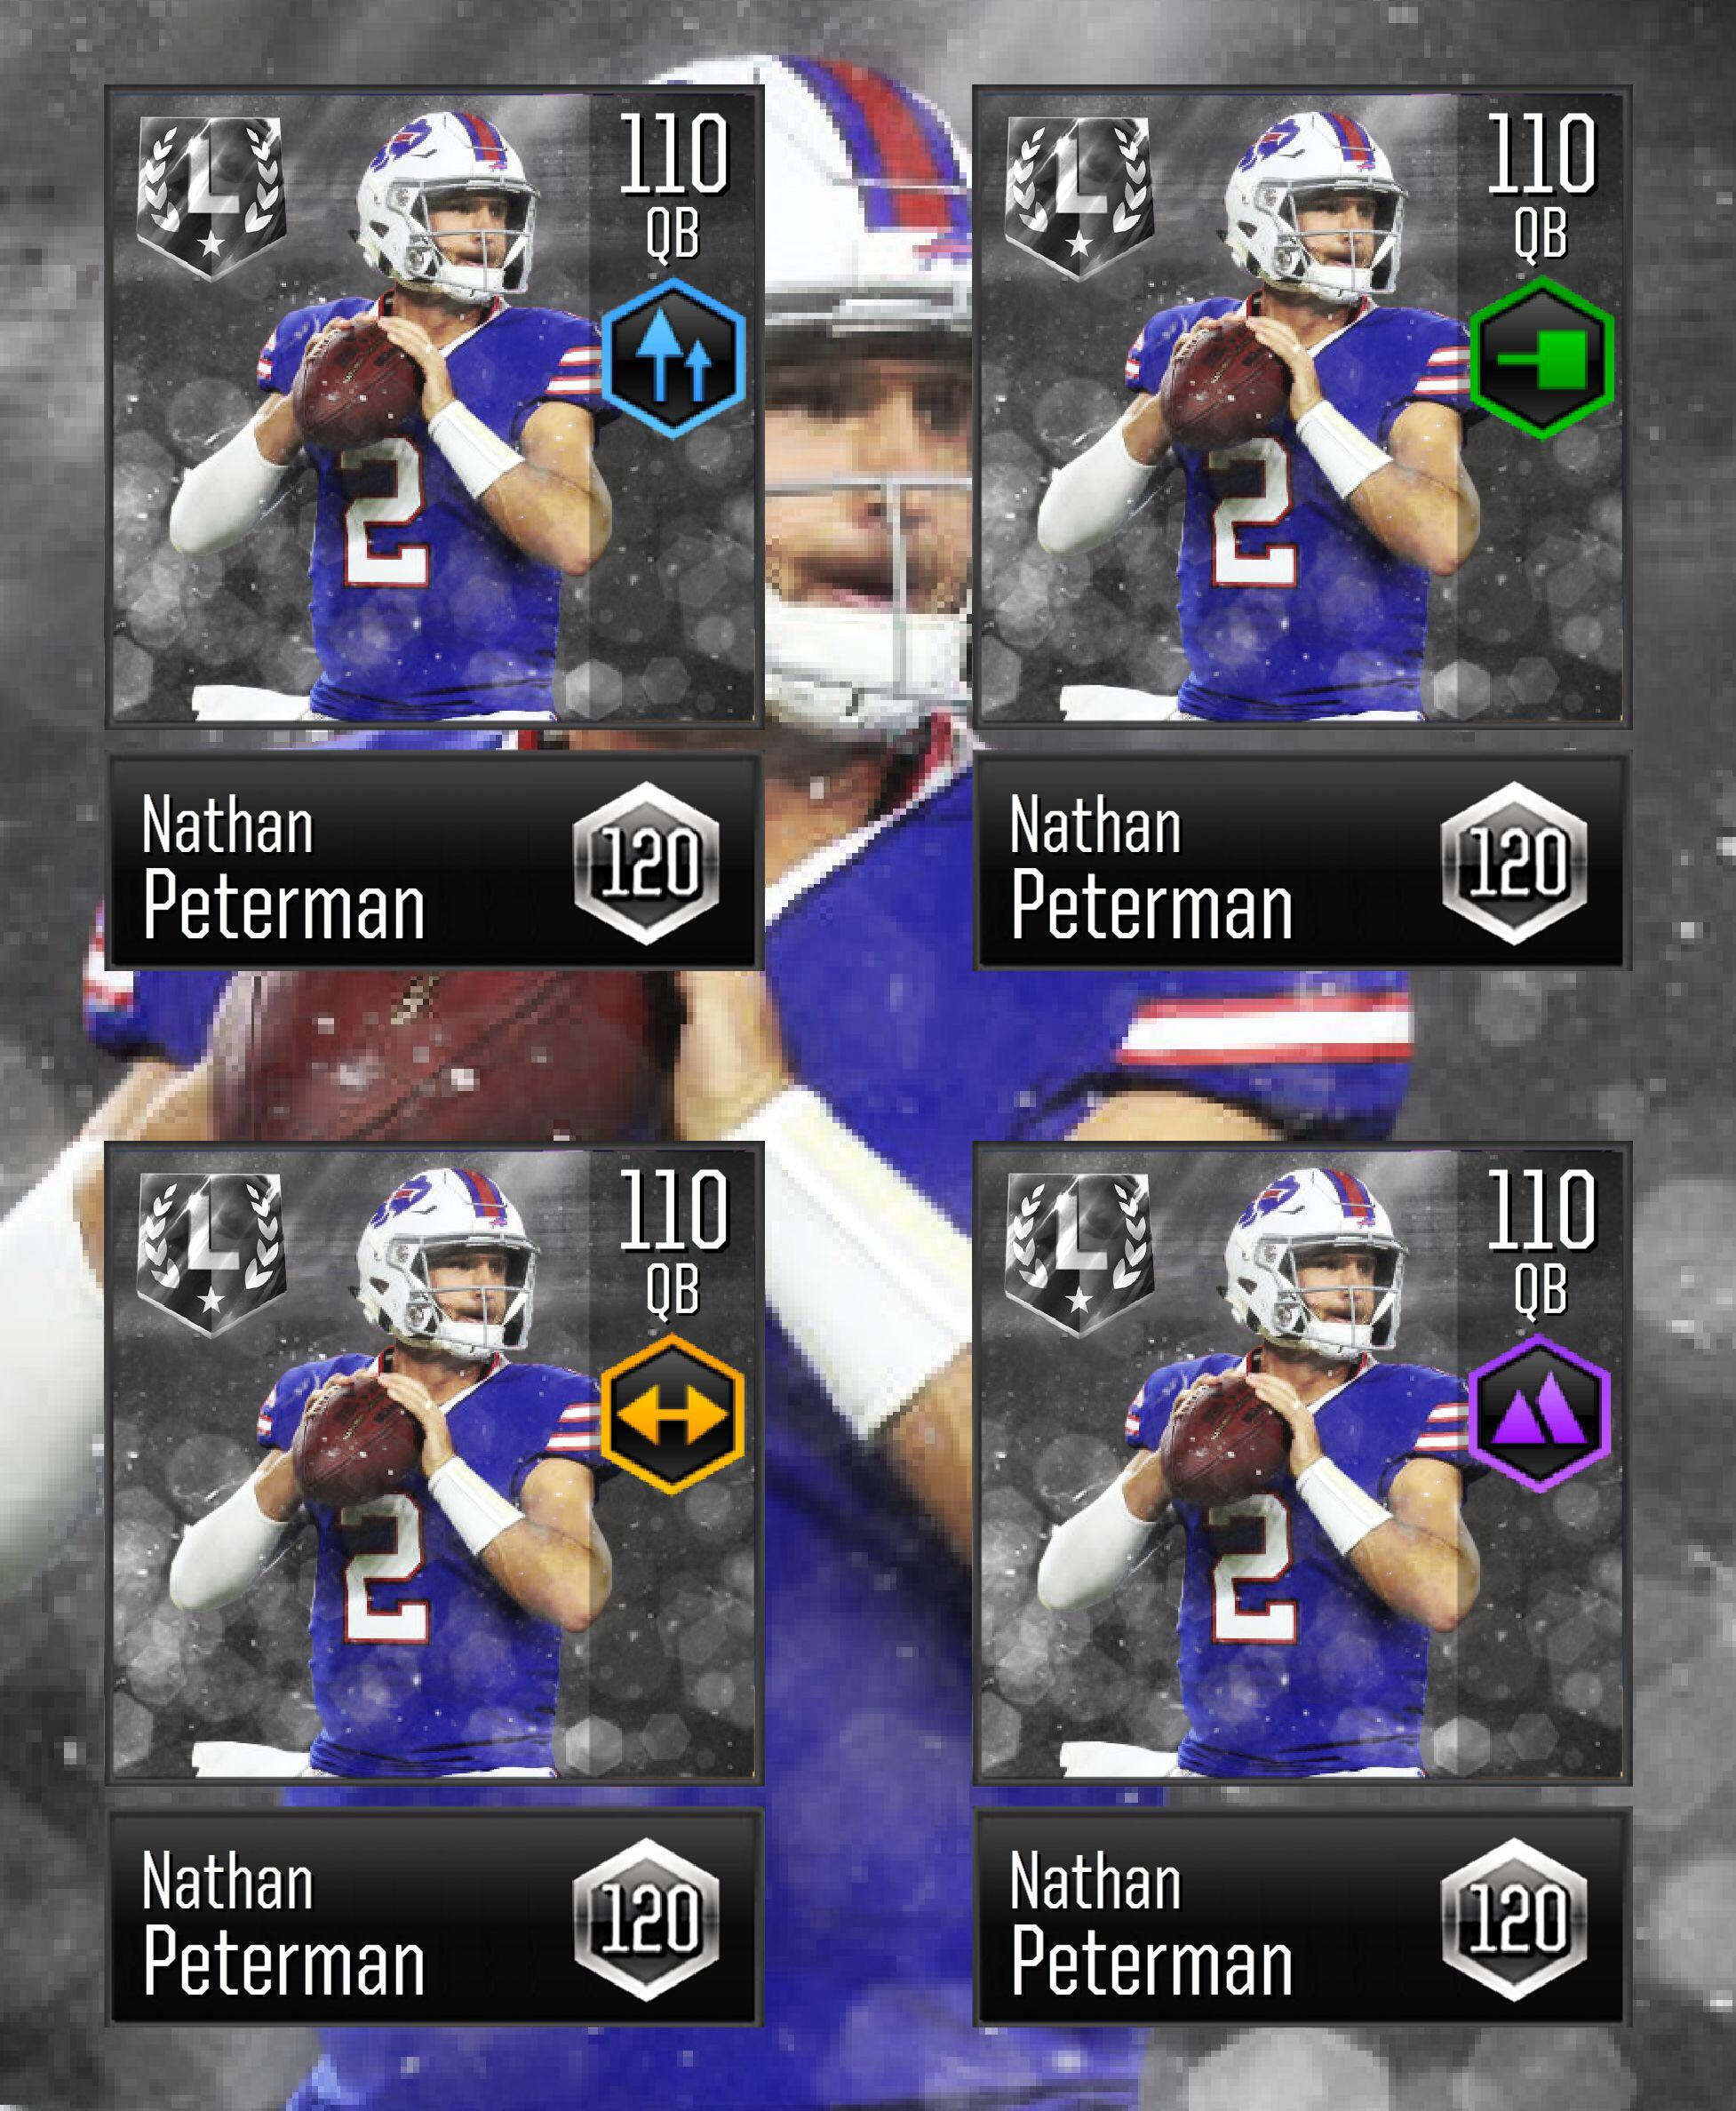 Nathan Peterman Memes : nathan, peterman, memes, Concept], ULTIMATE, LEGEND, Nathan, Peterman, MaddenMobileForums